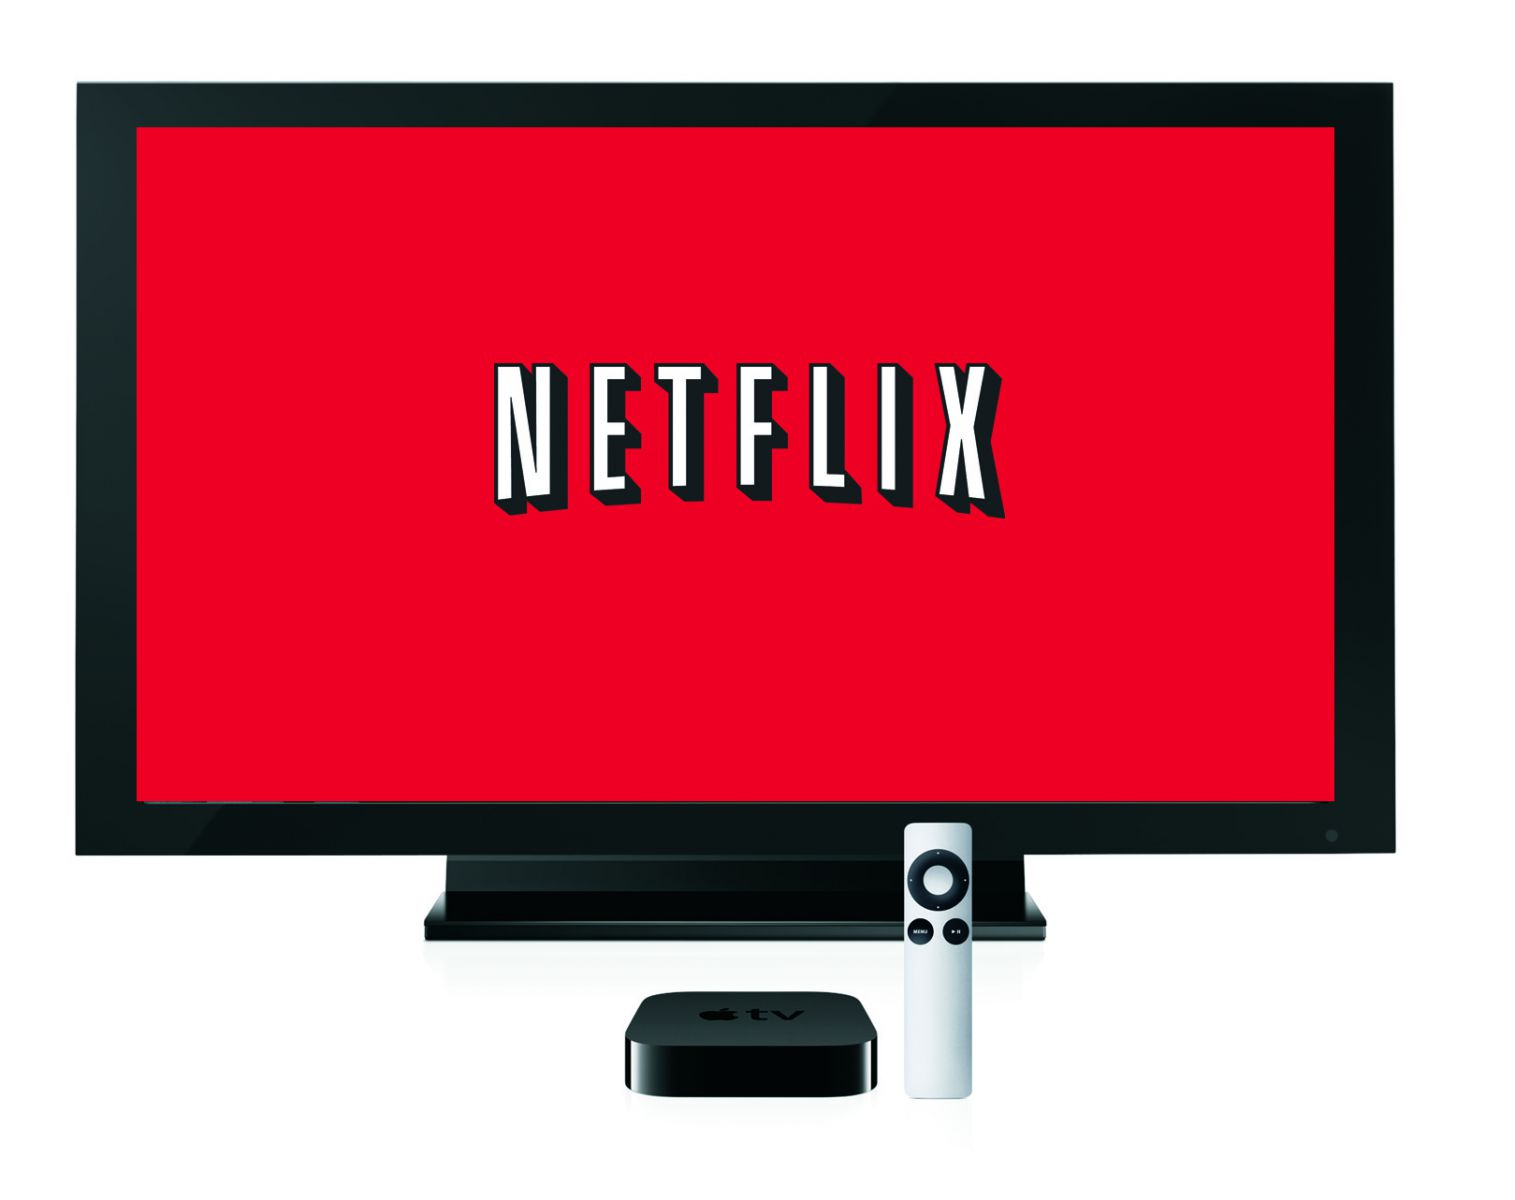 netflix information system Netflix: business success achieved through information systems first formed in 1991, netflix has become today's predominant video rental service.